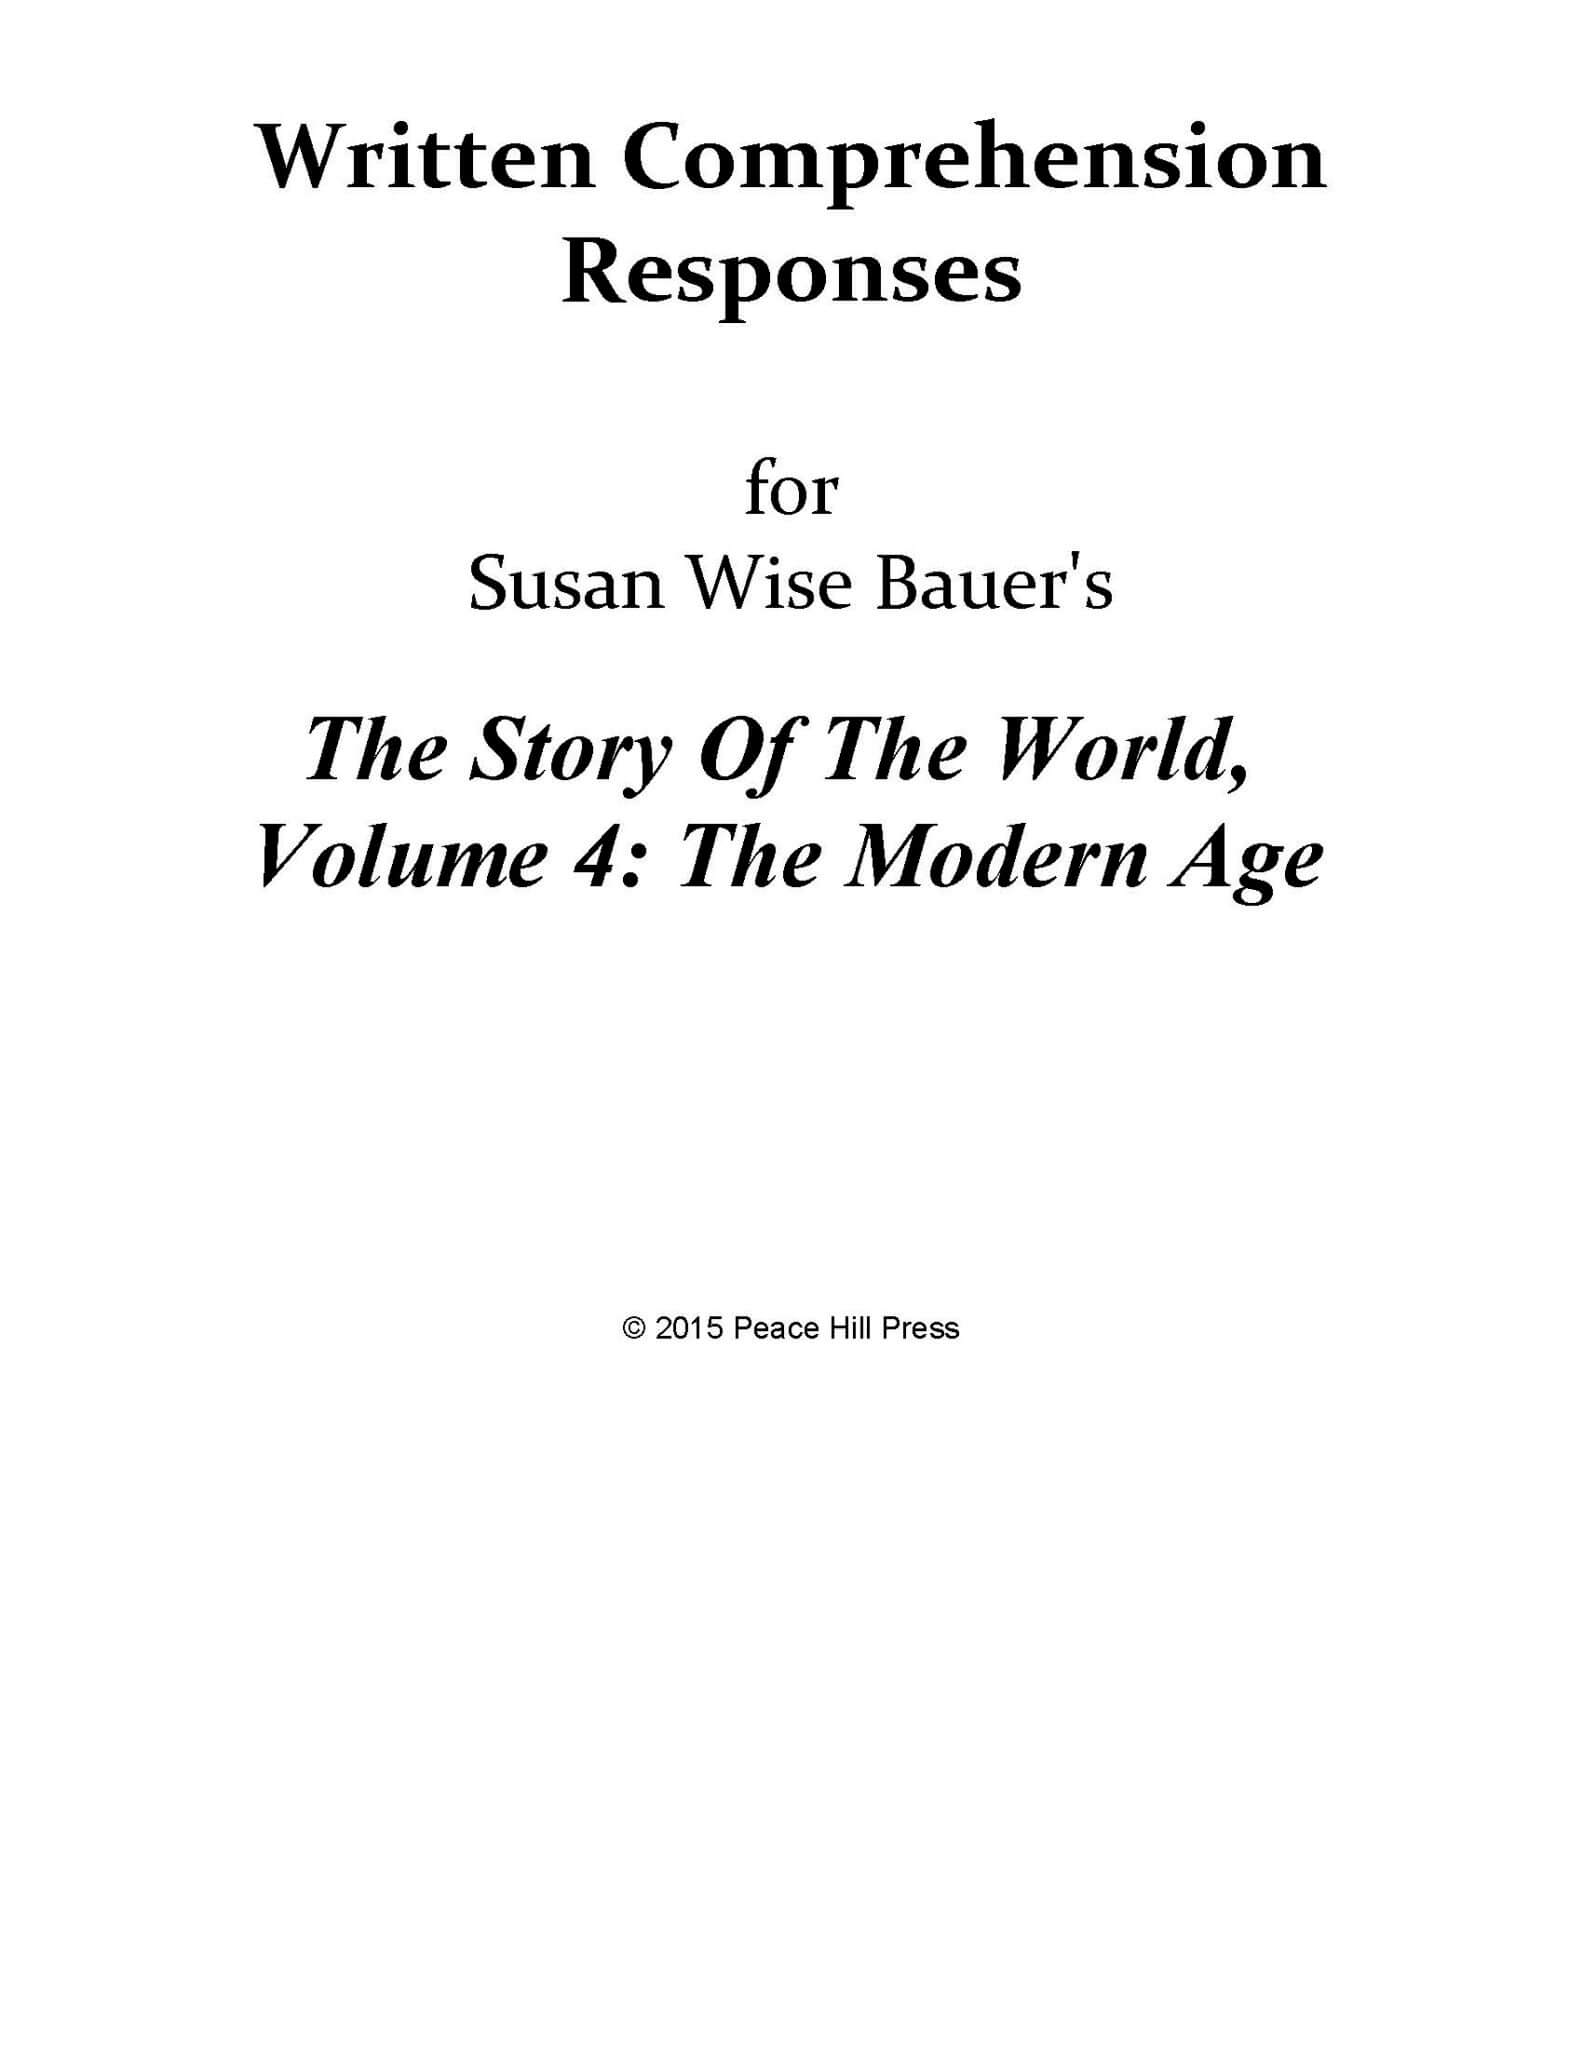 - The Story Of The World Vol. 4: The Modern Age, Written